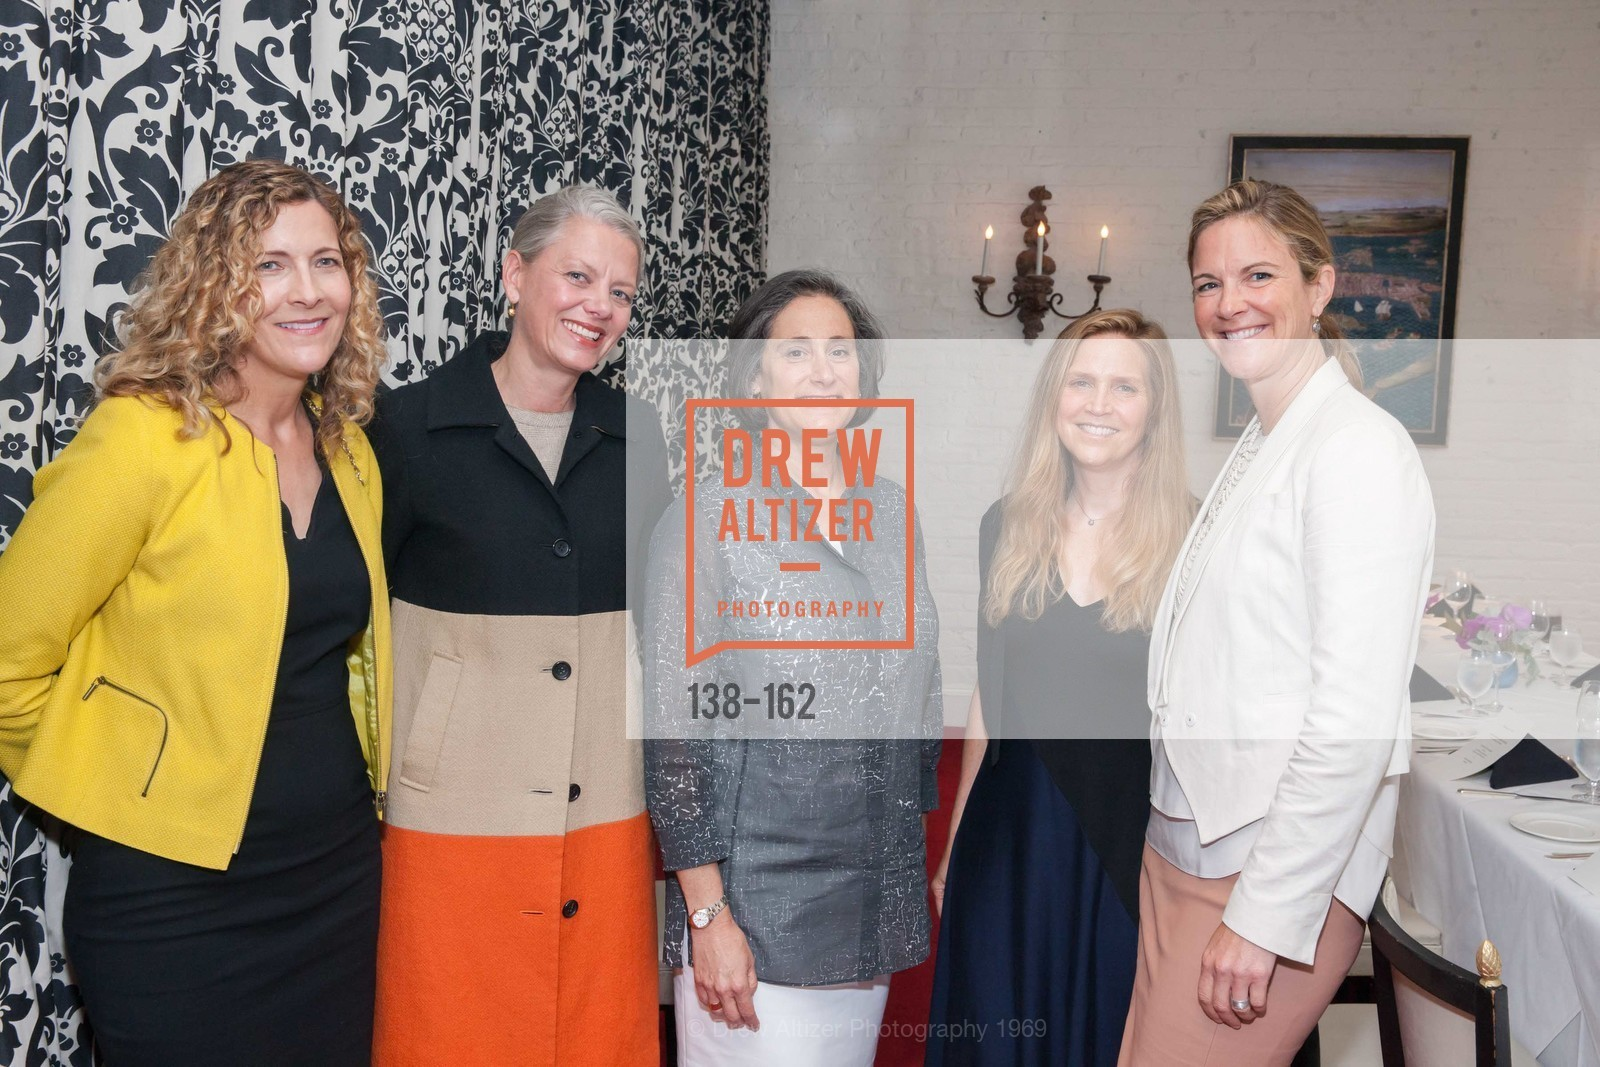 Joanne Northrup, Catharine Clark, Susan Sterling, Dana, Lisa Dolby Chadwick, National Museum of Women in the Arts Luncheon Hosted by Lorna Meyer Calas, Villa Taverna. 27 Hotaling Place, June 14th, 2015,Drew Altizer, Drew Altizer Photography, full-service agency, private events, San Francisco photographer, photographer california